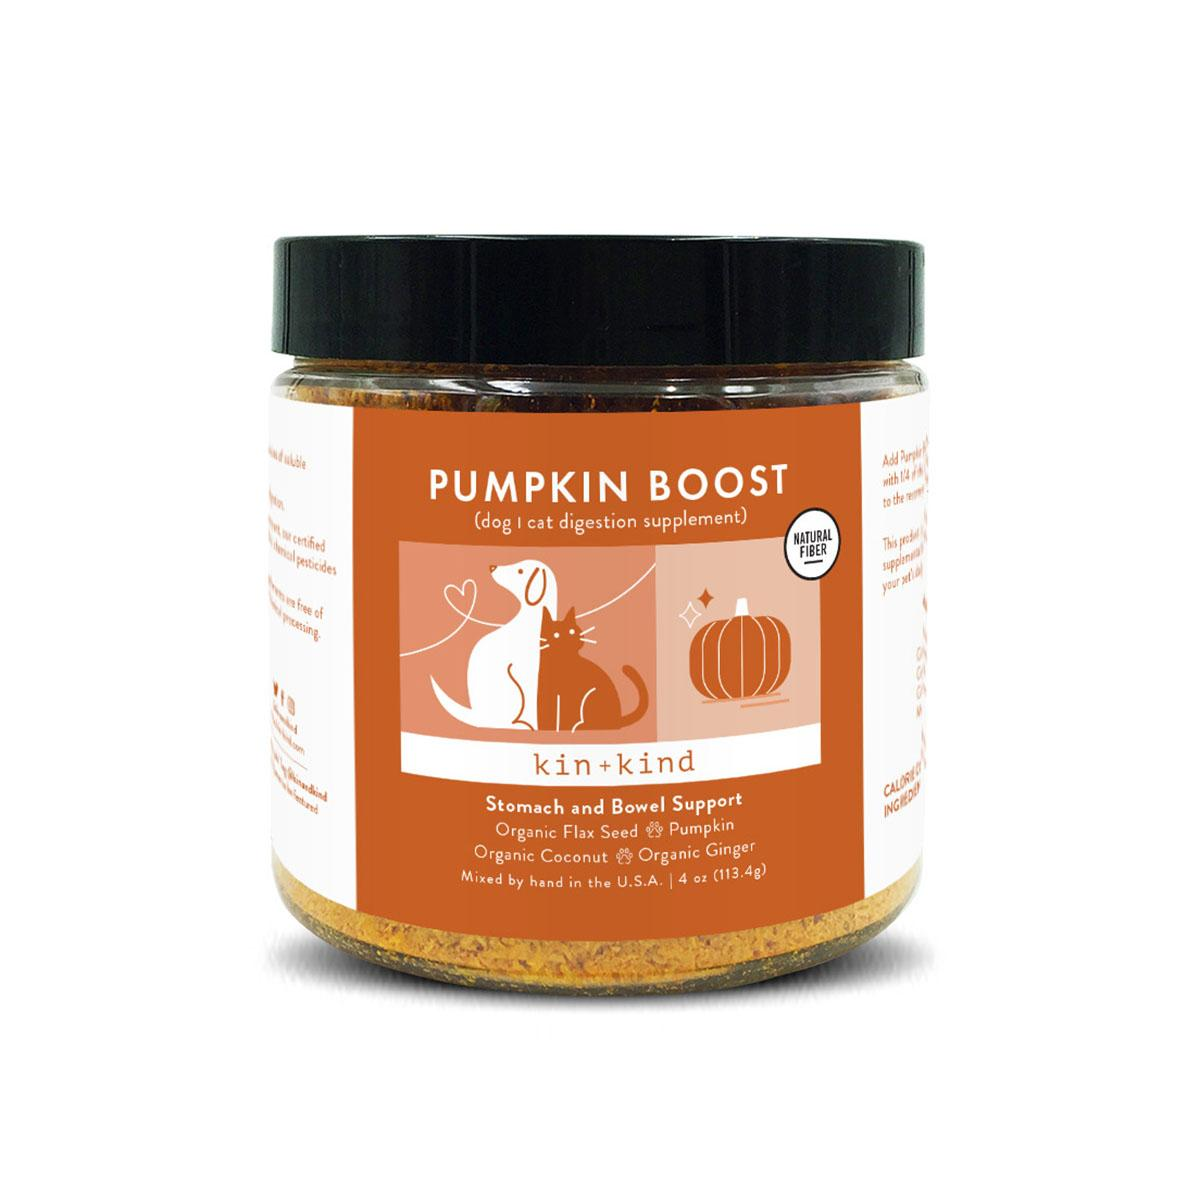 kin+kind Pumpkin Boost Organic Stomach & Bowel Support Supplement For Dogs & Cats